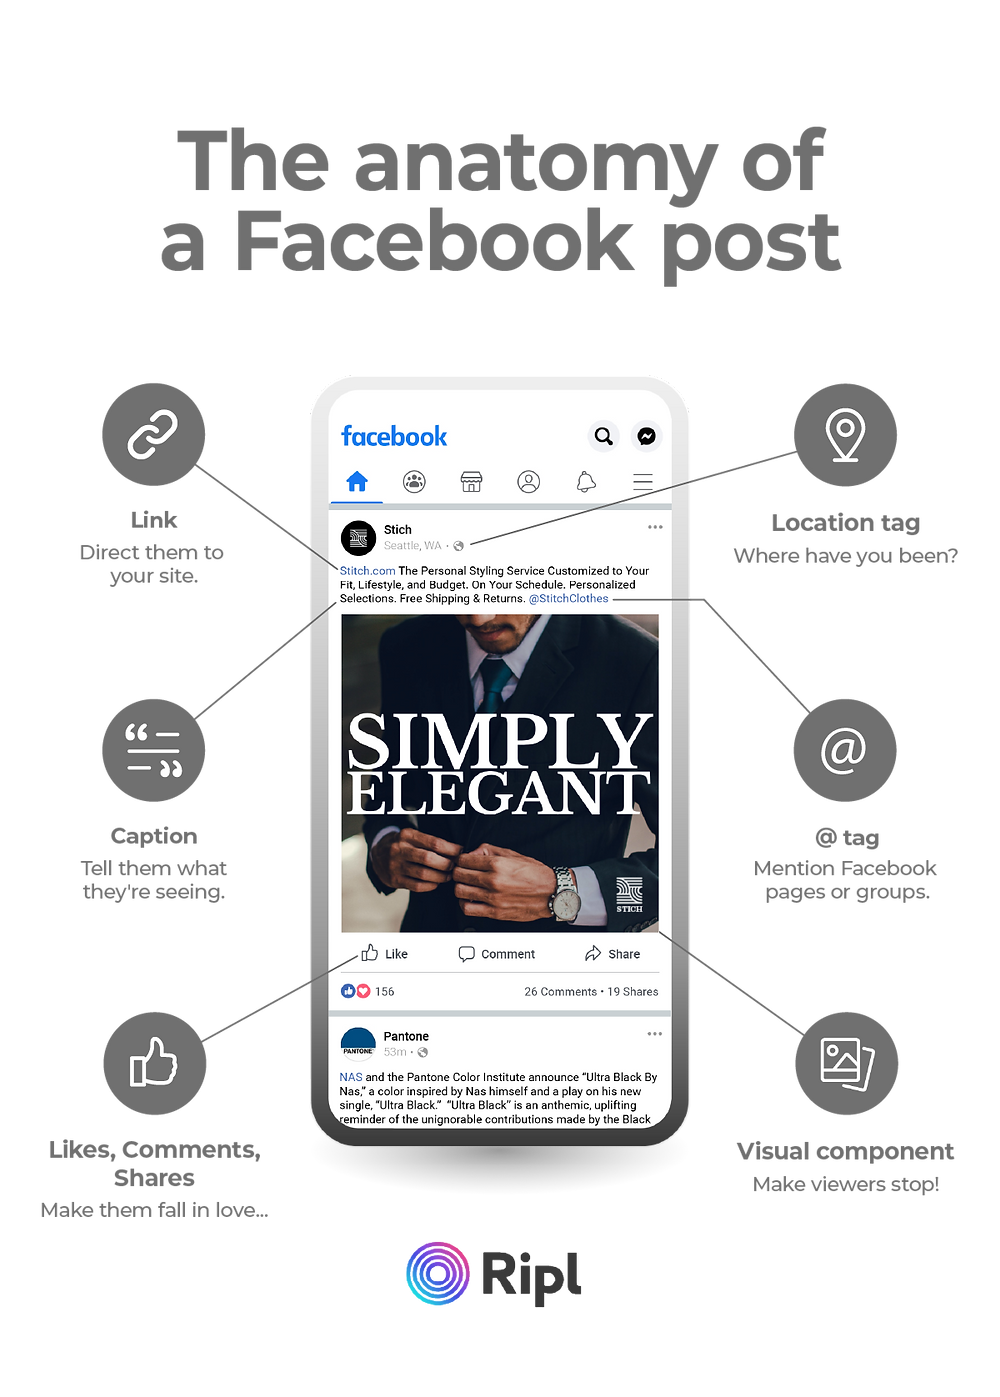 The anatomy of a Facebook post with link, location tag, caption, image, engagement, and user tags